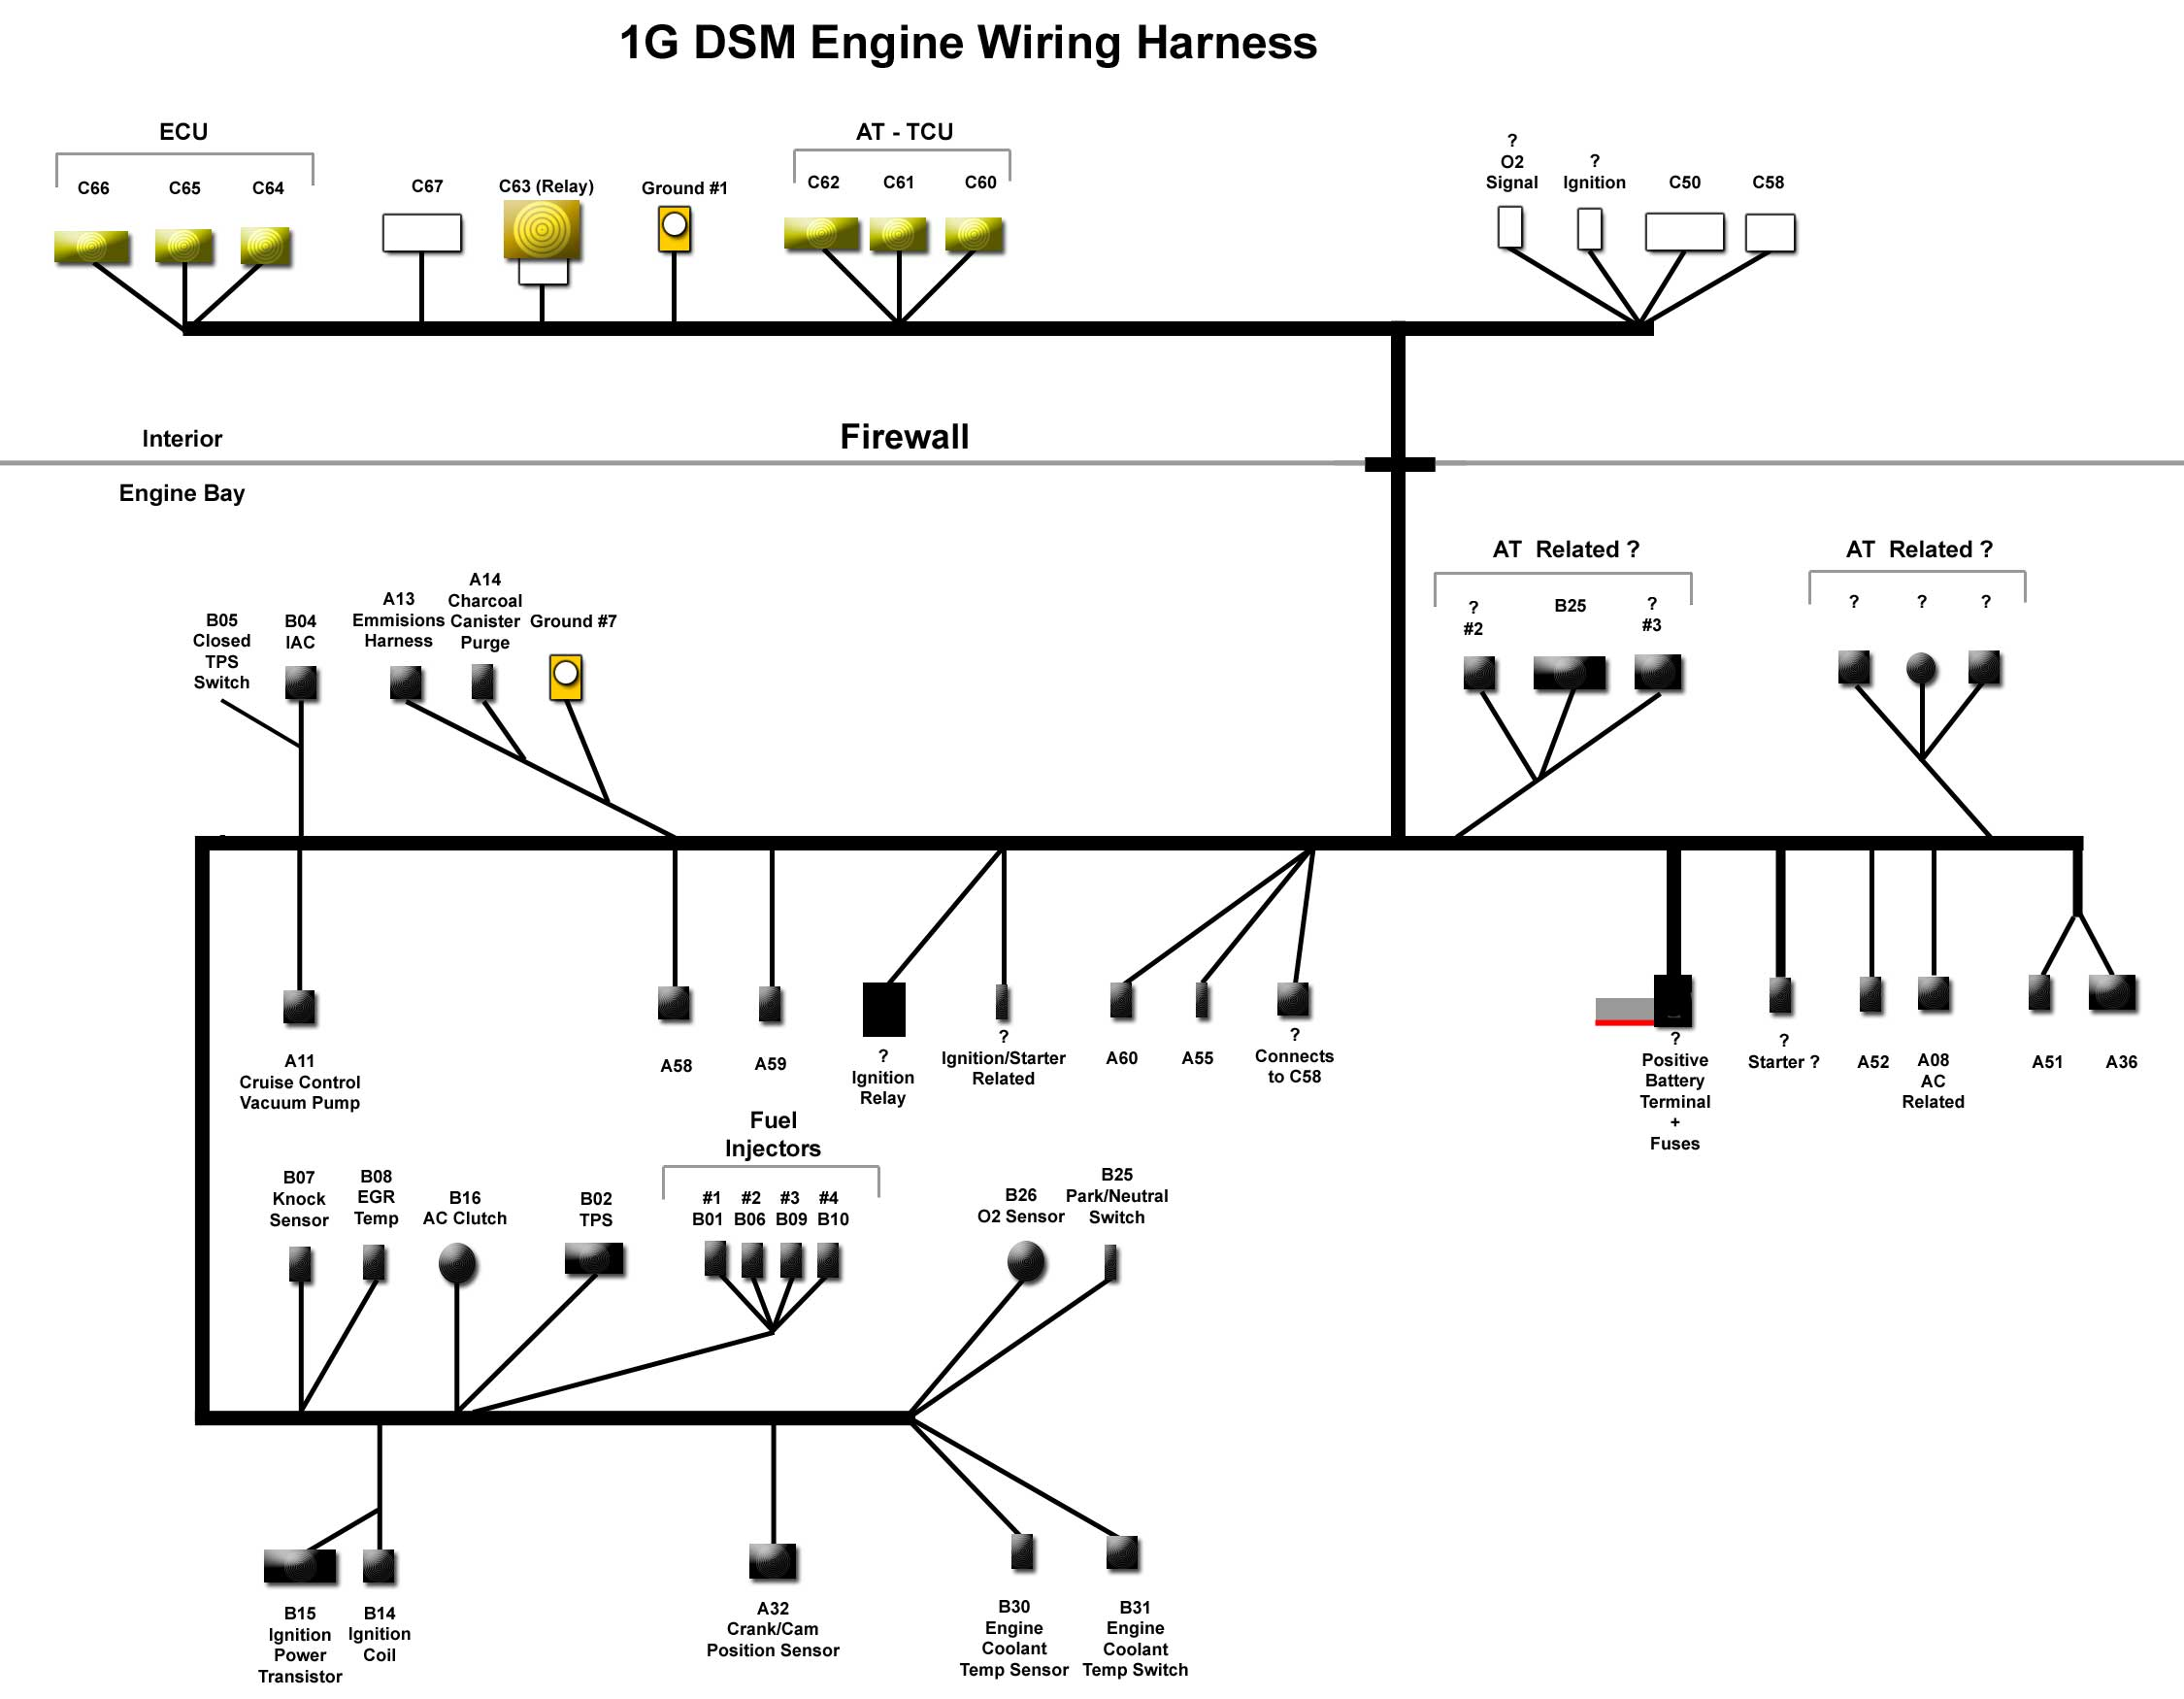 Wiring Harness Diagram Wiring Harness Diagram John Deere L100 – John Deere L100 Wiring Schematics